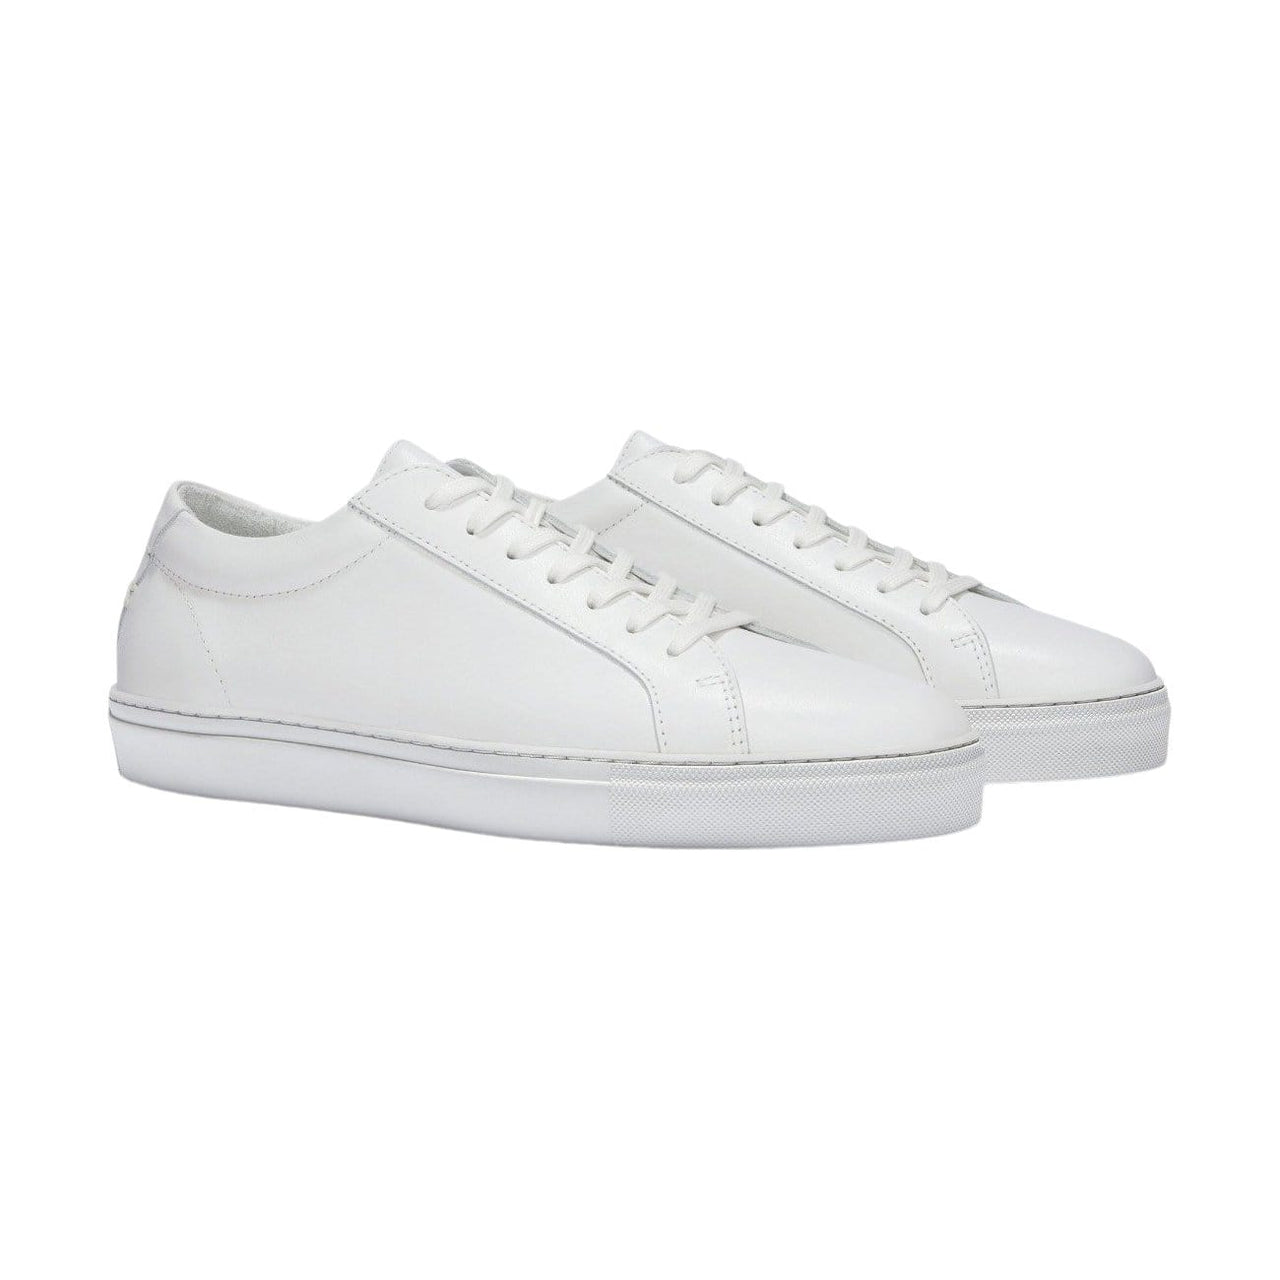 UNIFORM STANDARD Footwear Women's SERIES 1 Triple White Leather Sneaker